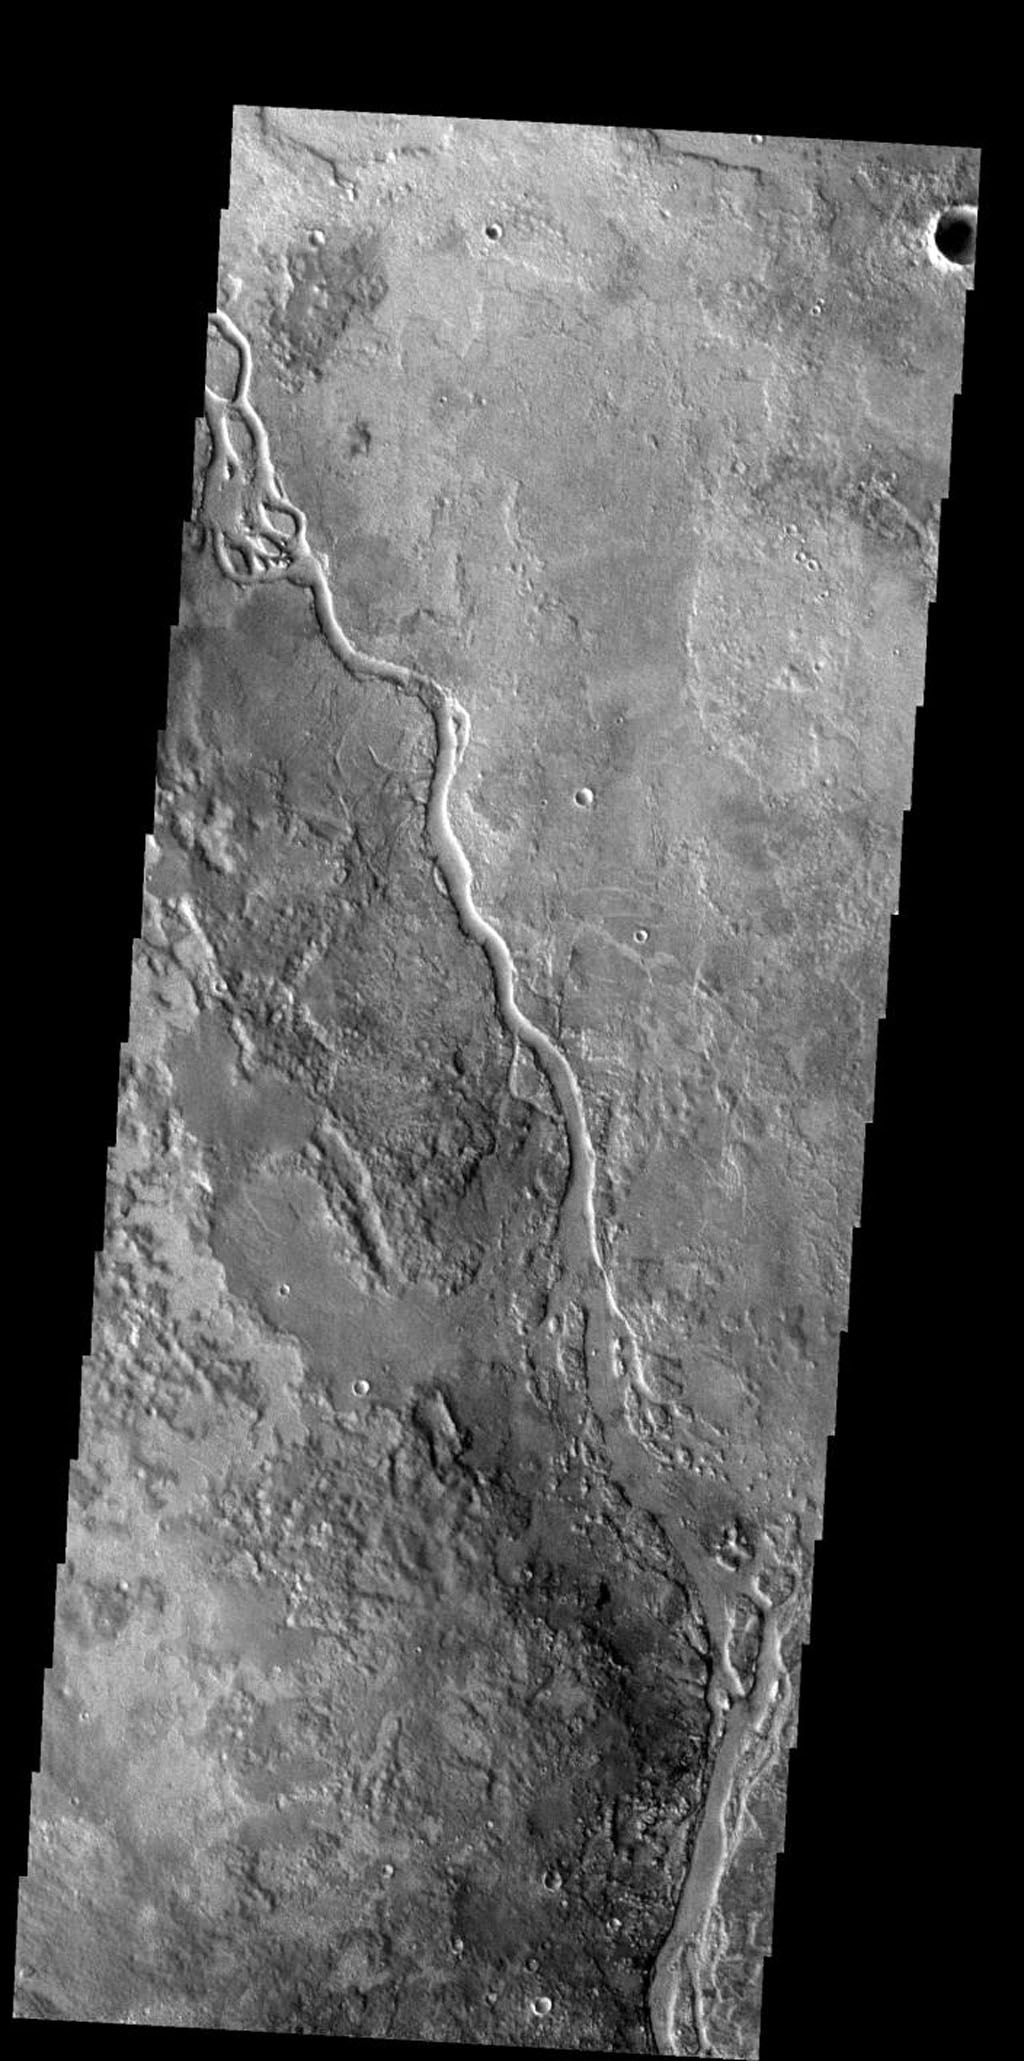 The channel in this image is called Apsus Vallis and it is located near the Elysium volcanic complex. Lava may have played a part in the formation of Apsus Vallis on Mars as seen by NASA's 2001 Mars Odyssey.